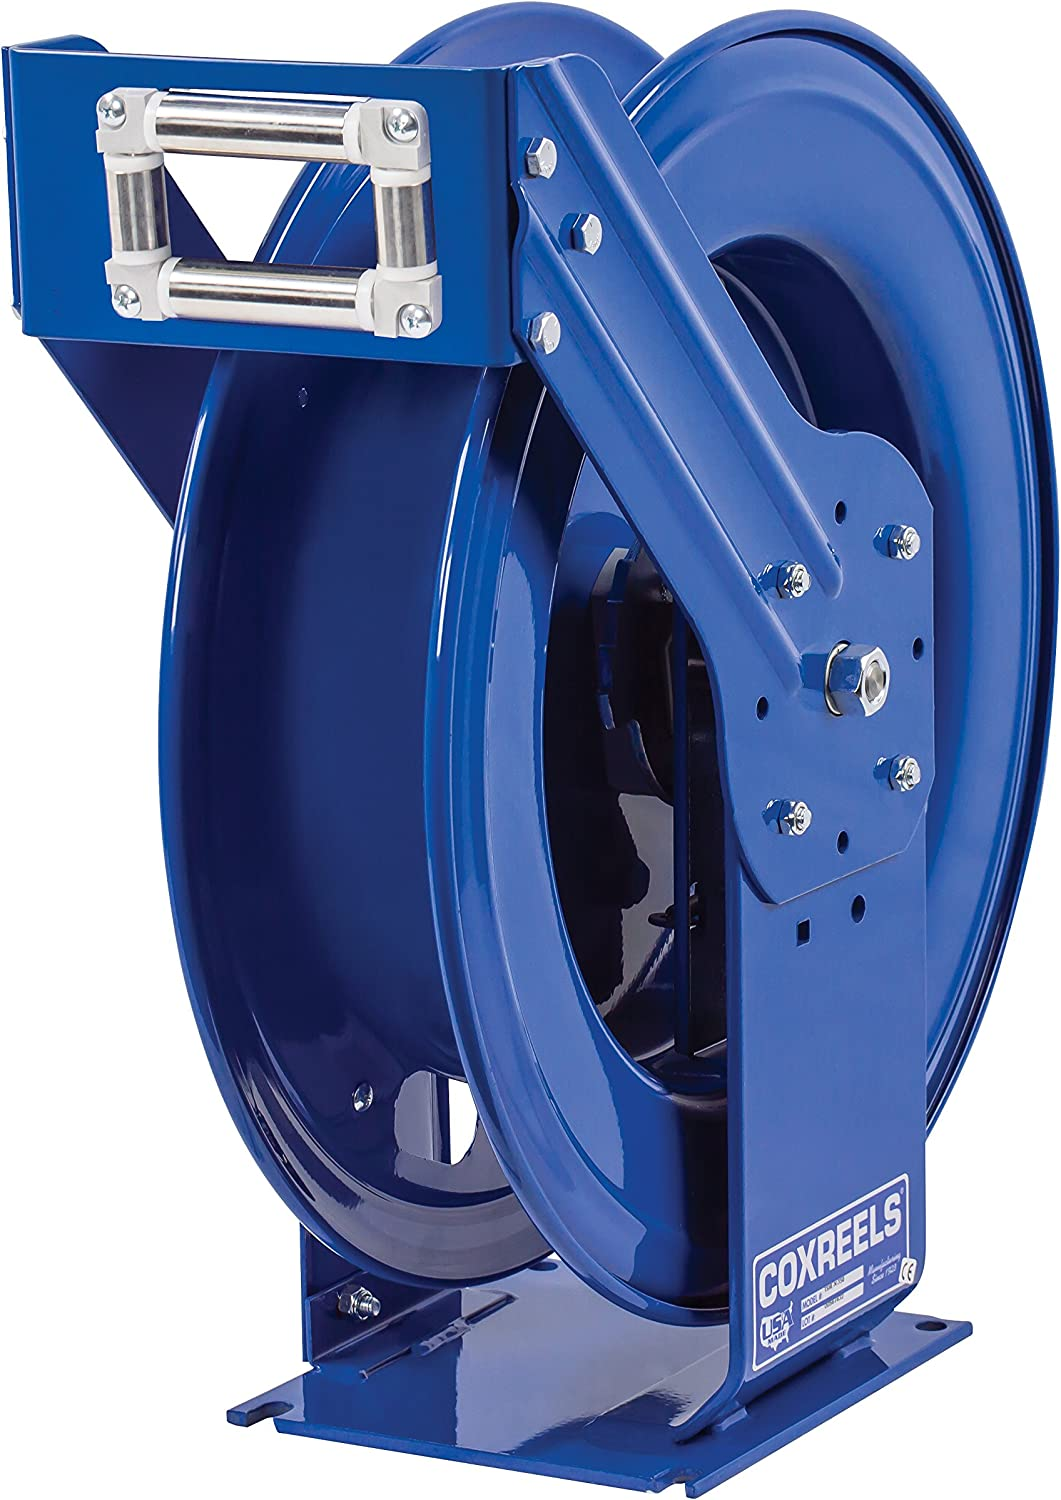 "Coxreels TSHL-N-550-DF-BBX Spring Rewind Hose Reel for DEF Applications: 3/4"" I.D, 50' Hose, 300 psi, Less Hose"